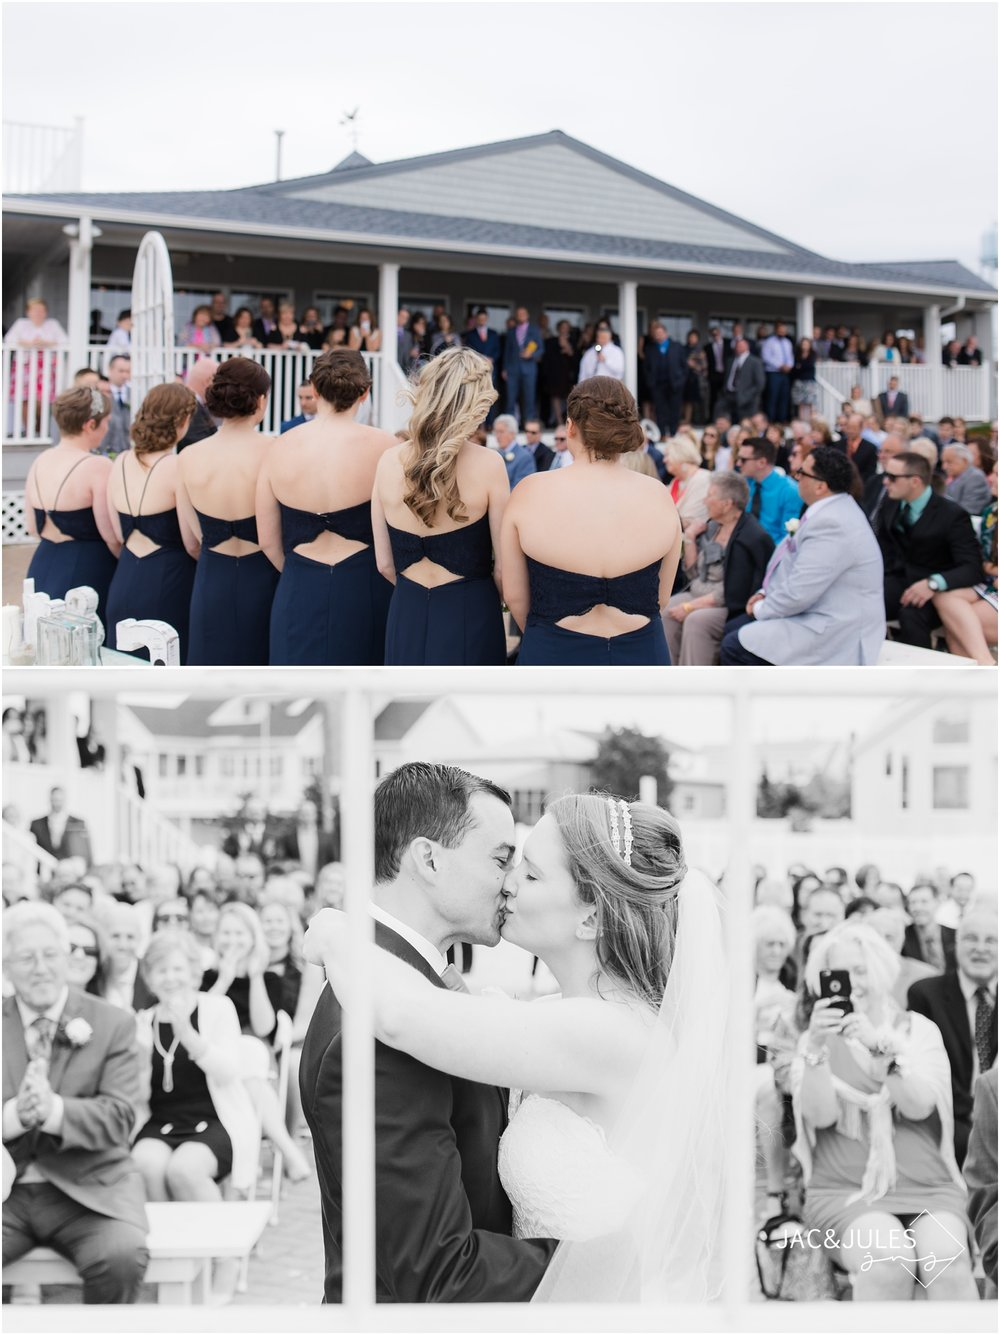 First kiss at wedding ceremony at Brant Beach Yacht Club in Beach Haven, NJ.